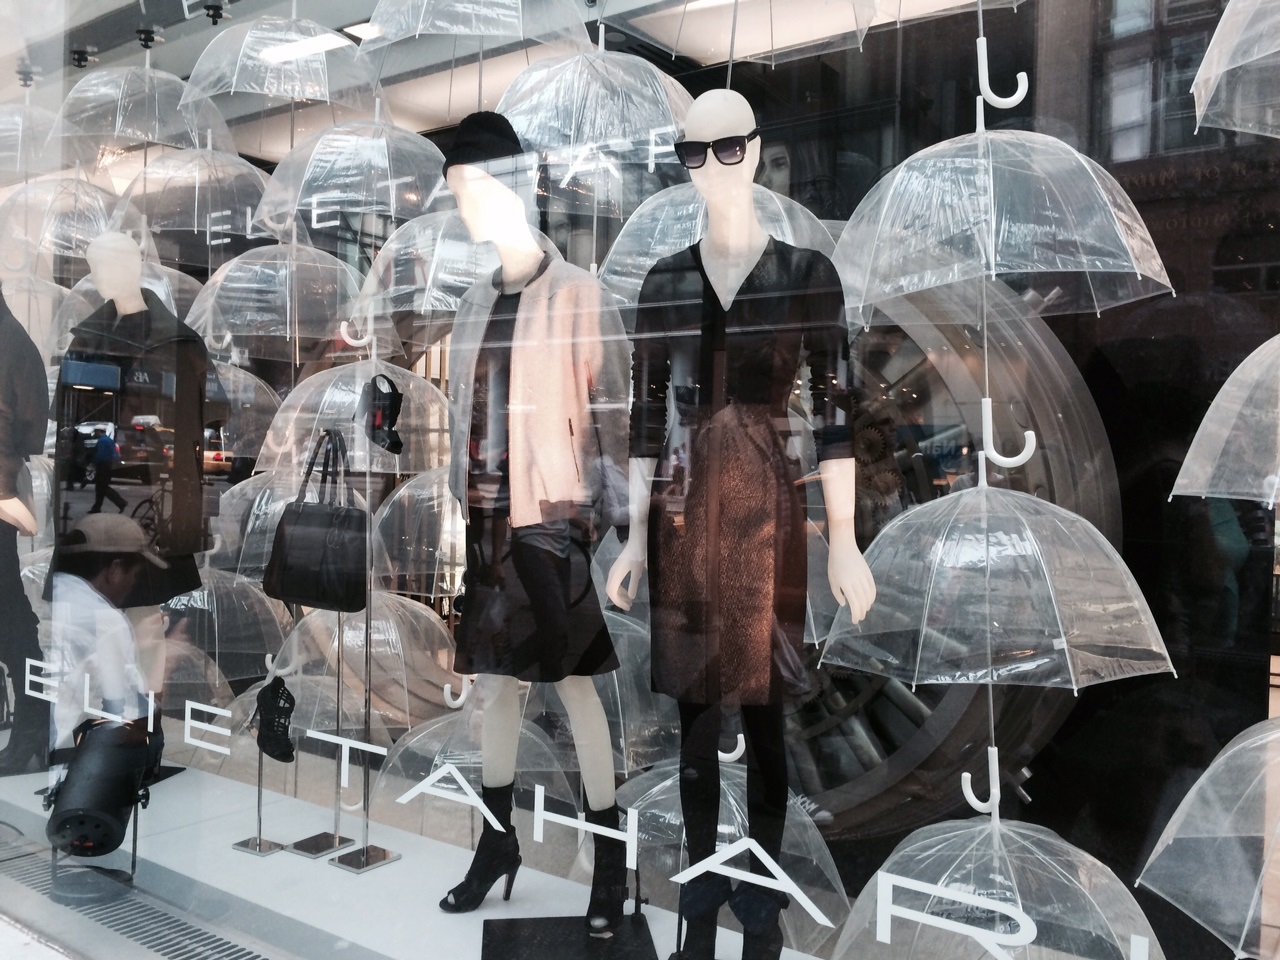 This window display is marking the autumn with lots of hanging umbrellas and dark autumnal colors on clothes.